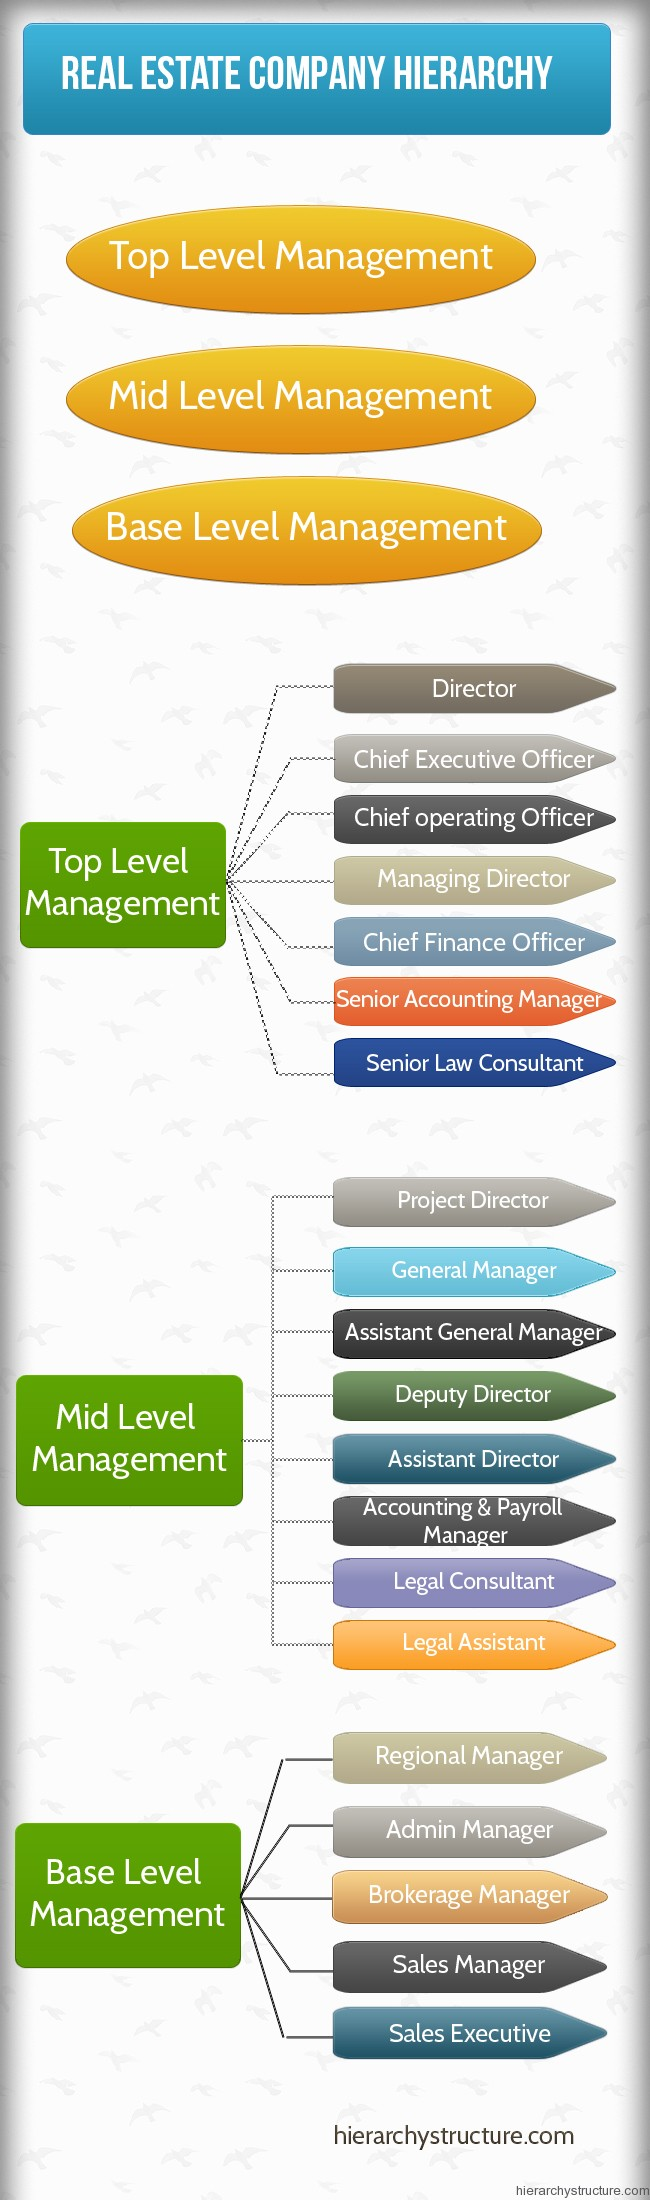 Top Real Estate Development Firms : Real estate company hierarchy chart tructure